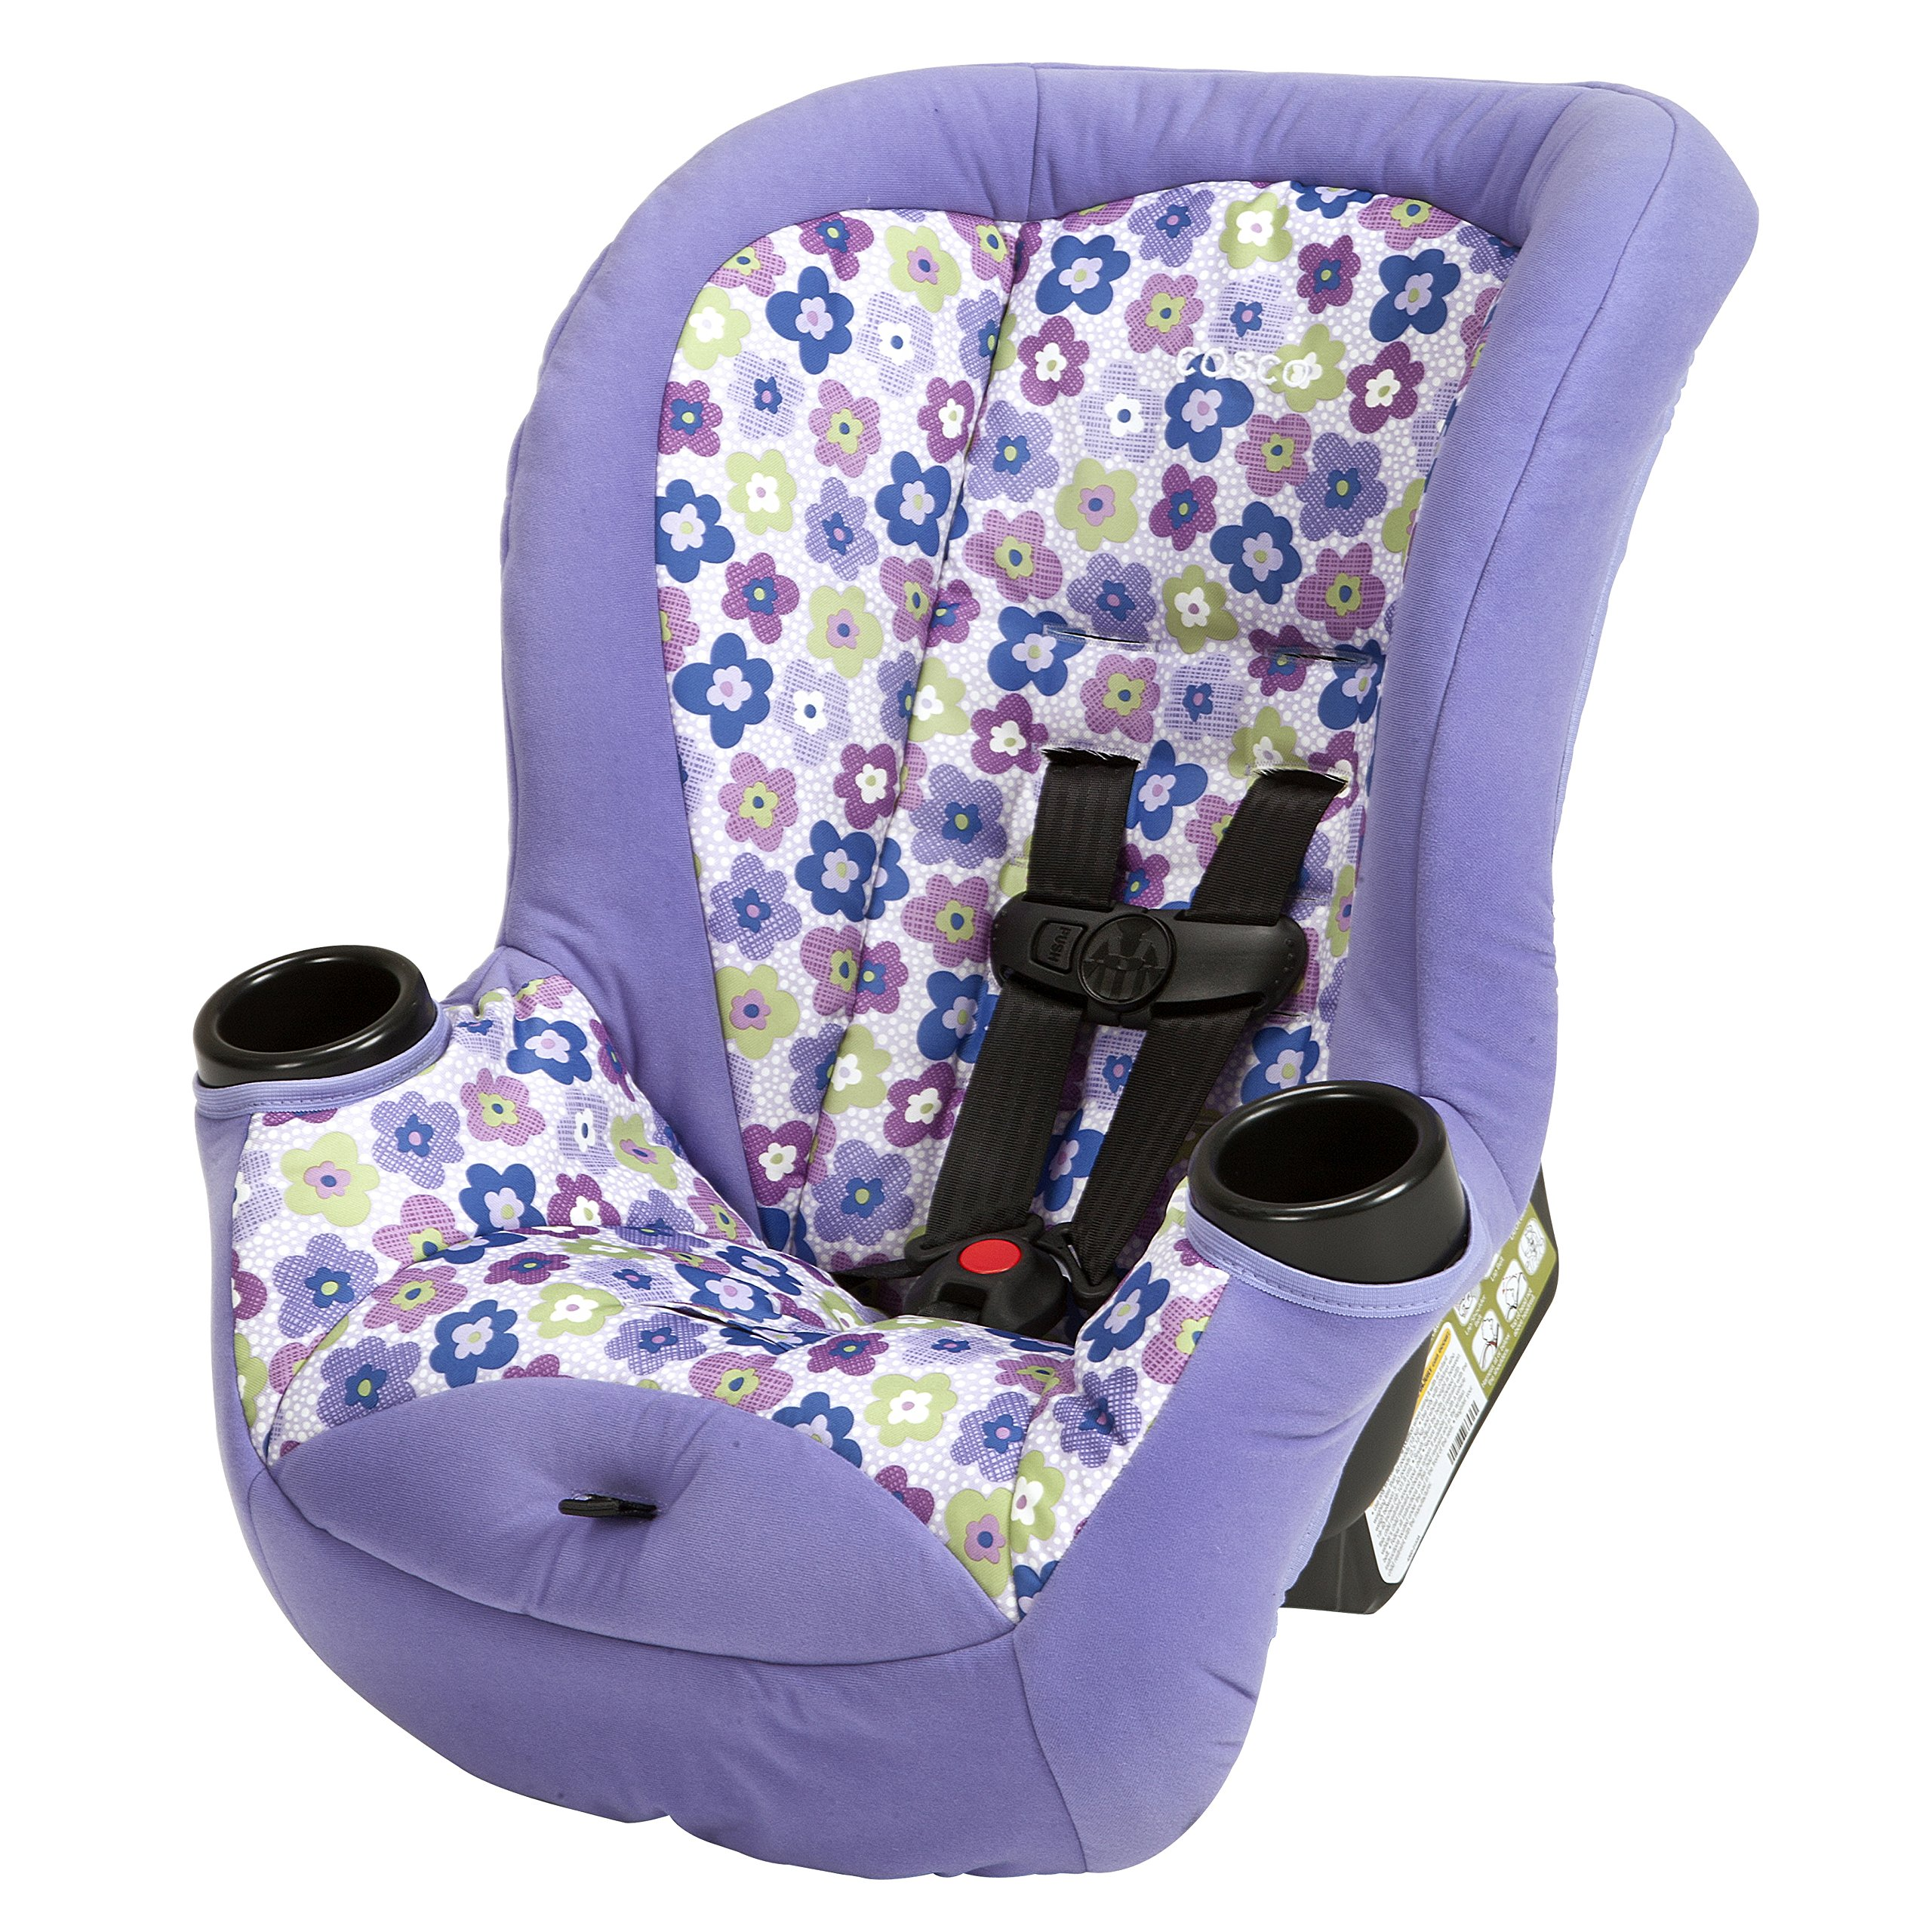 Hklrvo Ml on Evenflo Tribute Sport Convertible Car Seat